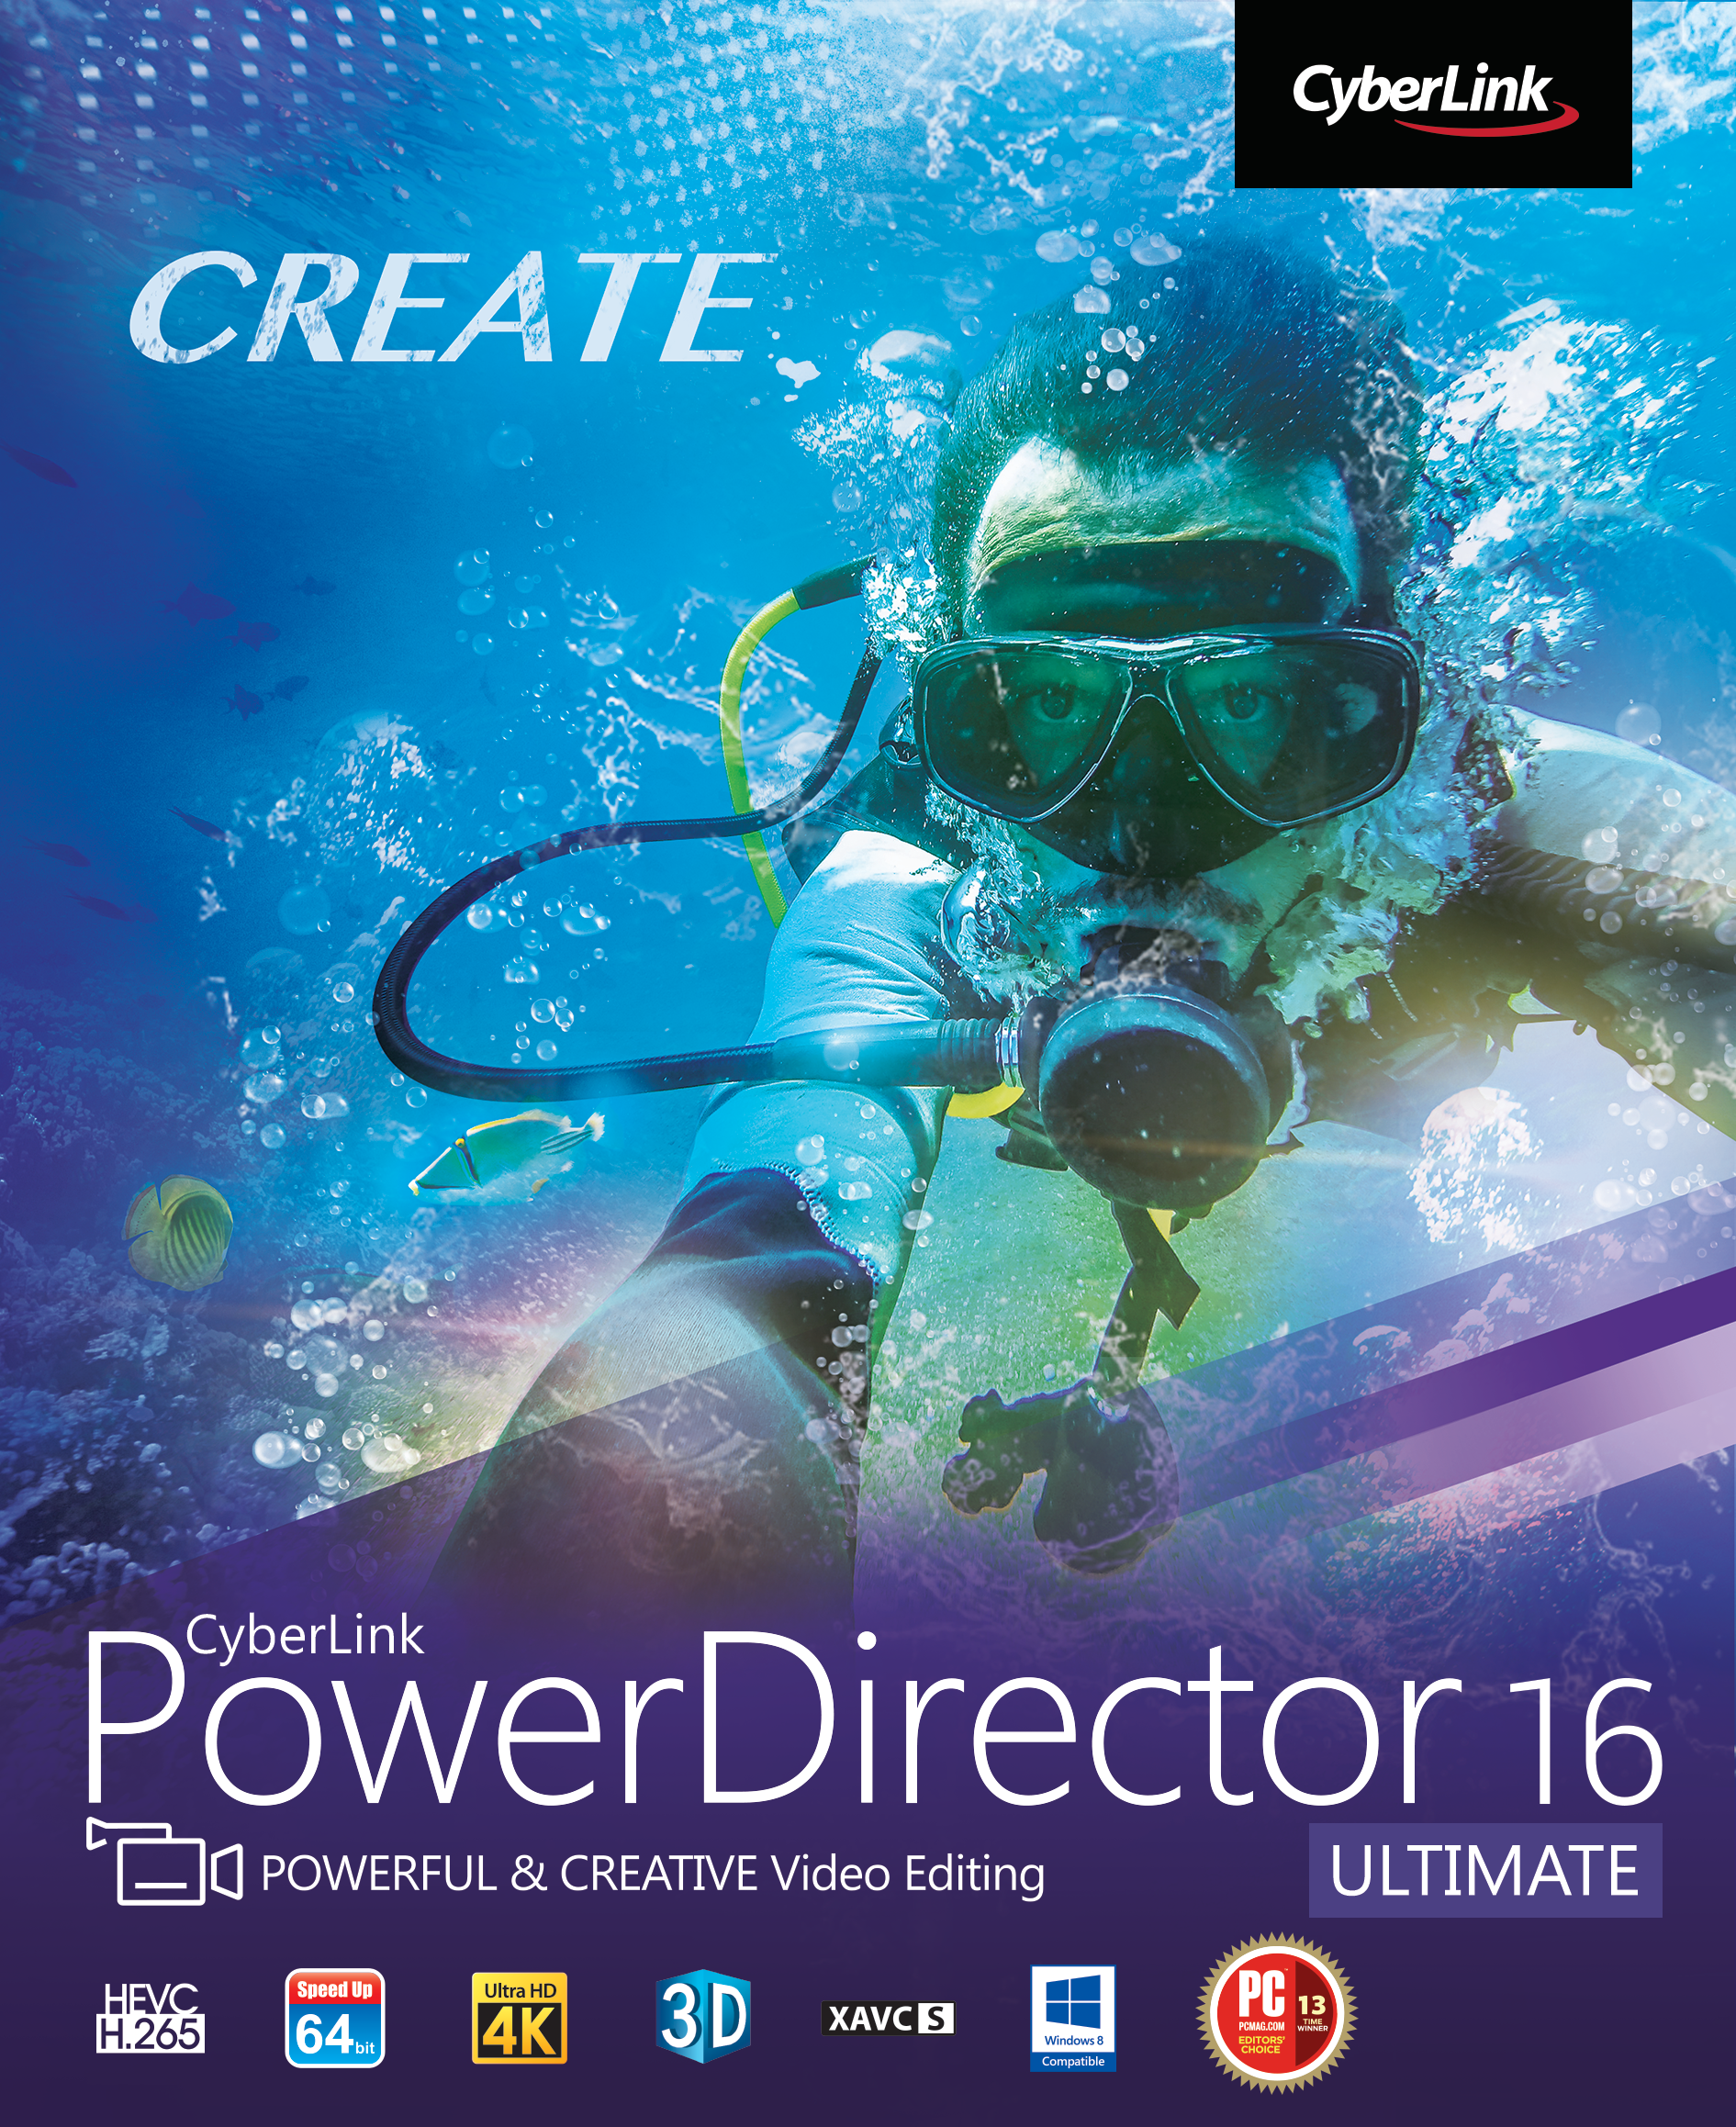 cyberlink powerdirector 16 keygen download